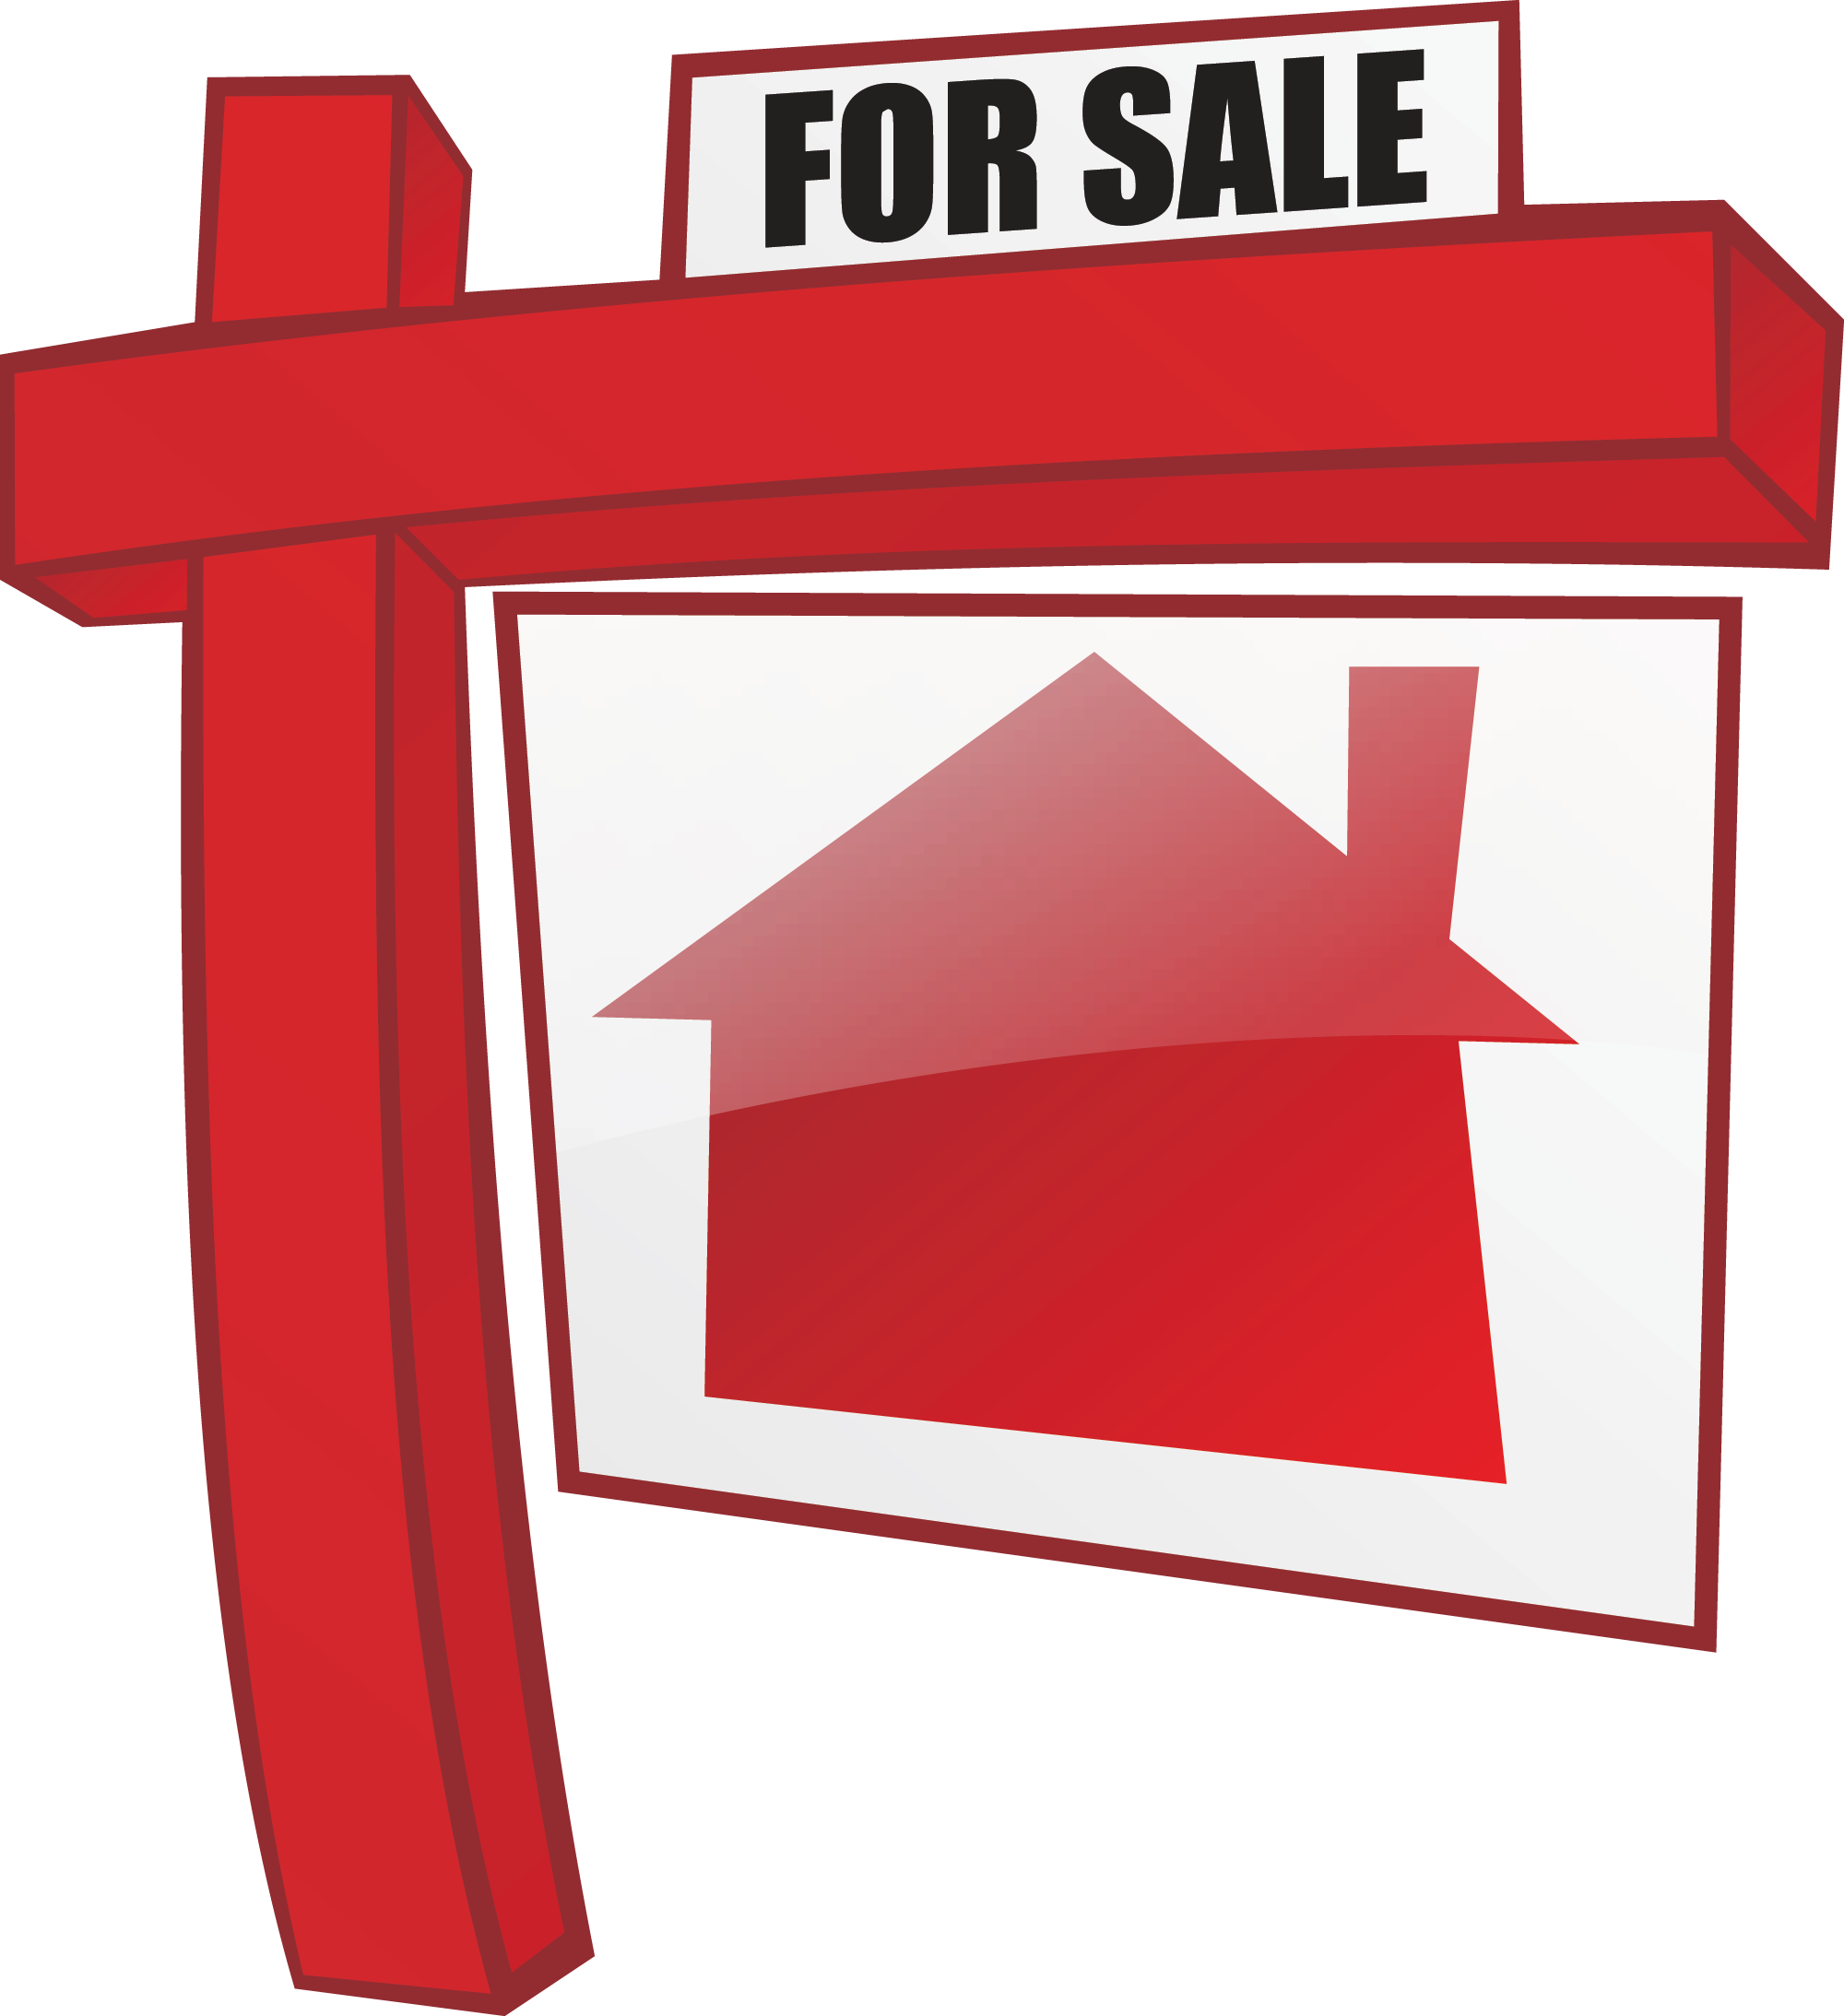 Sale clipart red. Small rural house with